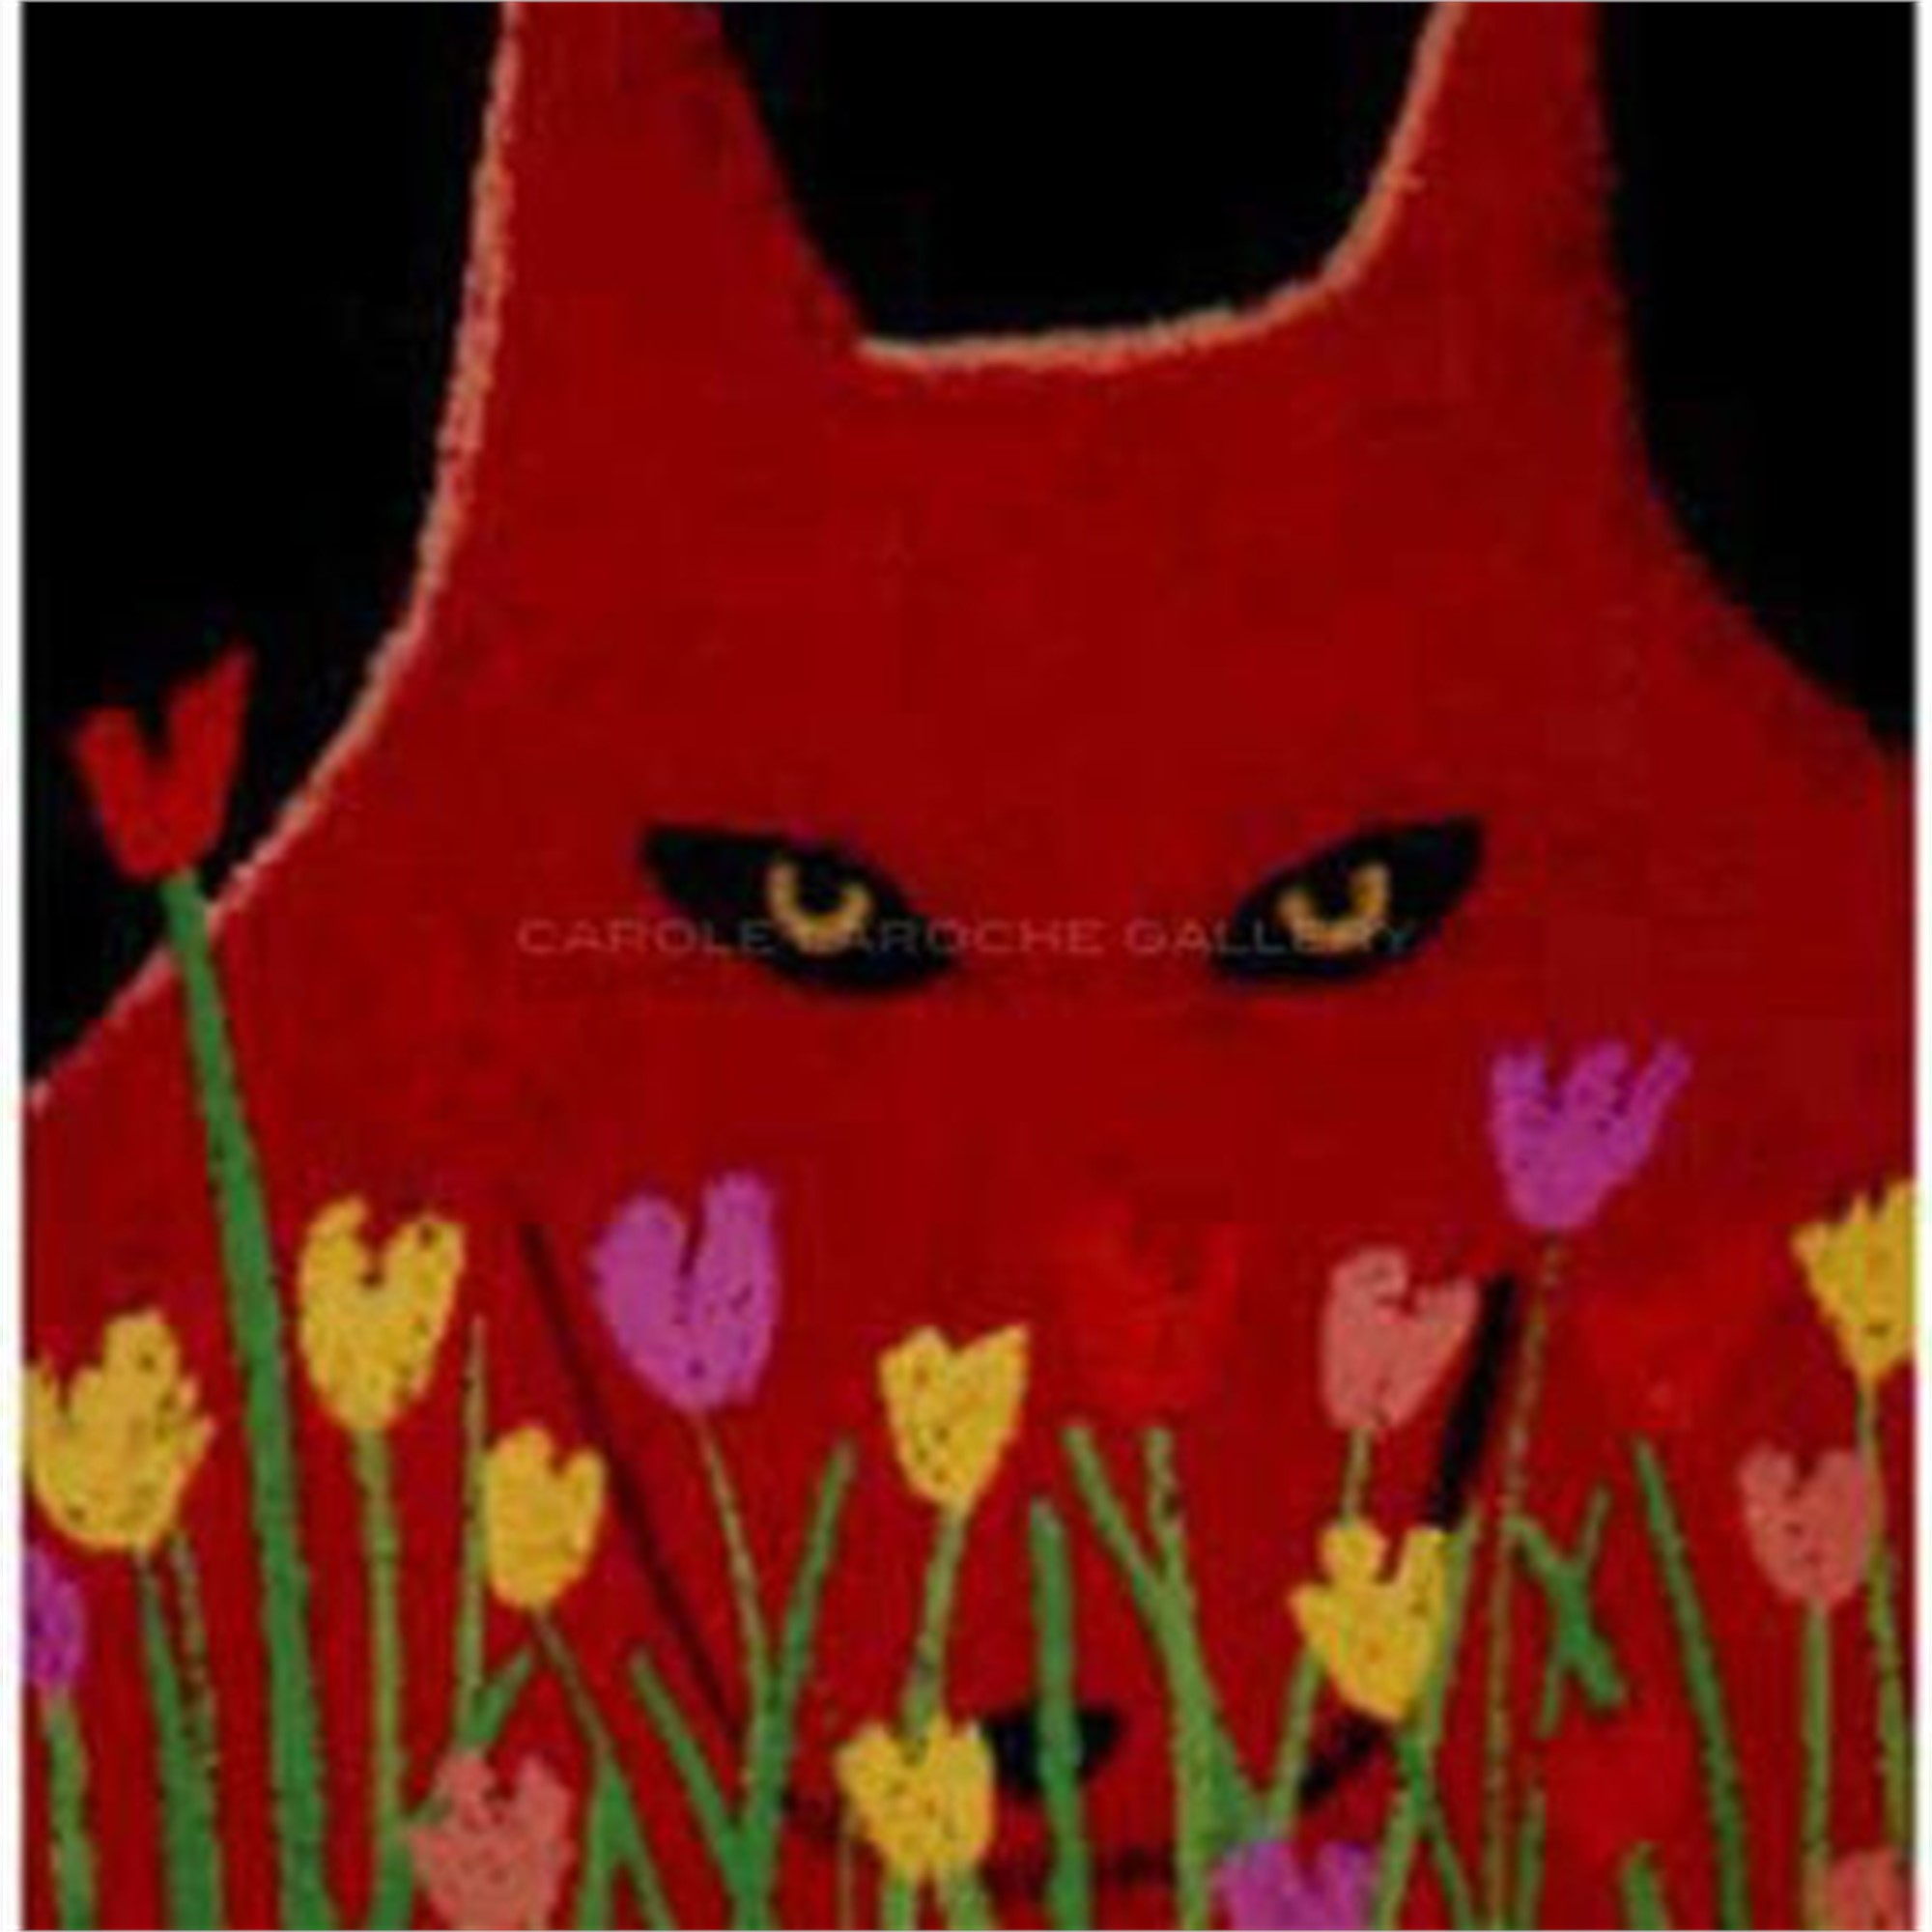 "SINGLE RED WOLF AND FLOWERS - limited edition giclee on paper w/frame size of 23""x20"" by Carole LaRoche"